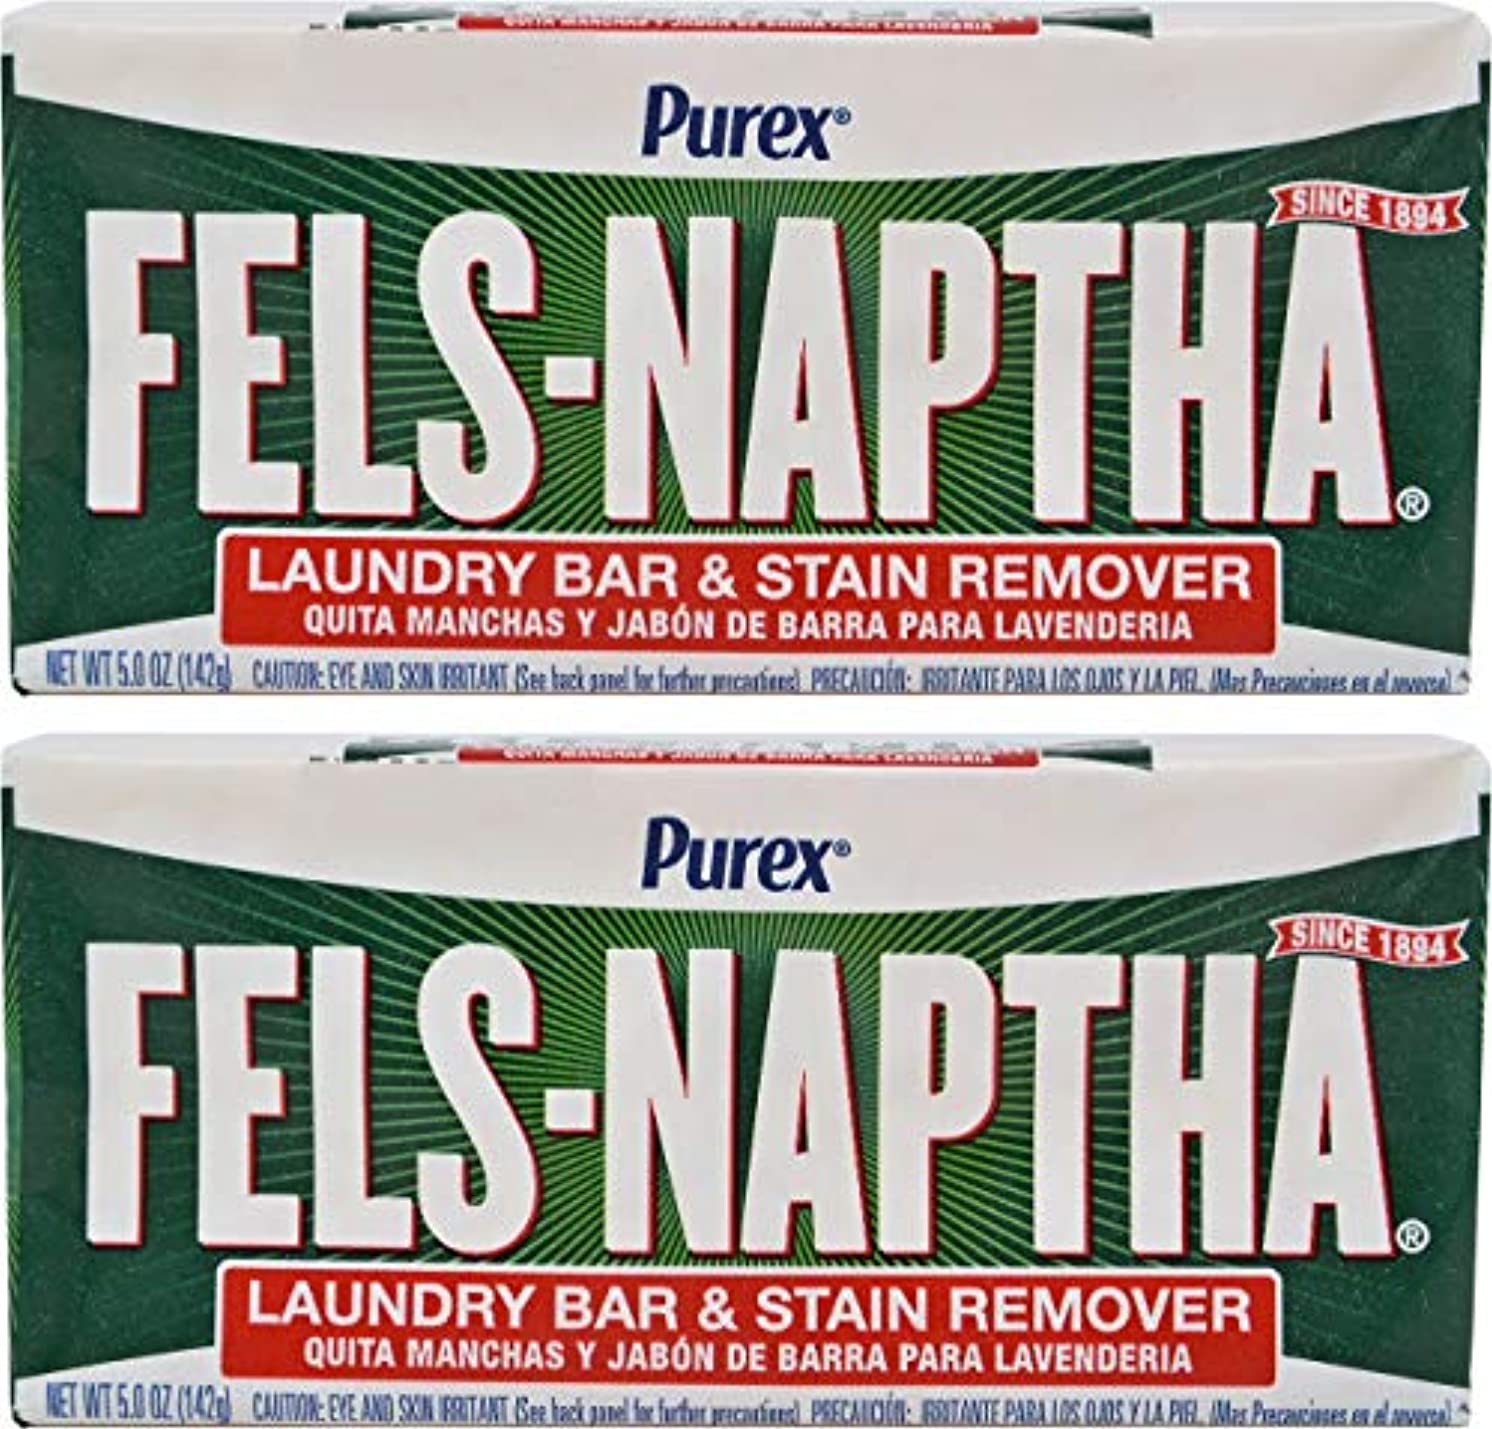 フォーム電話するクルーFels Naptha Heavy Duty Laundry Soap Bar - 5.5 oz - 2 pk by Fels Naptha